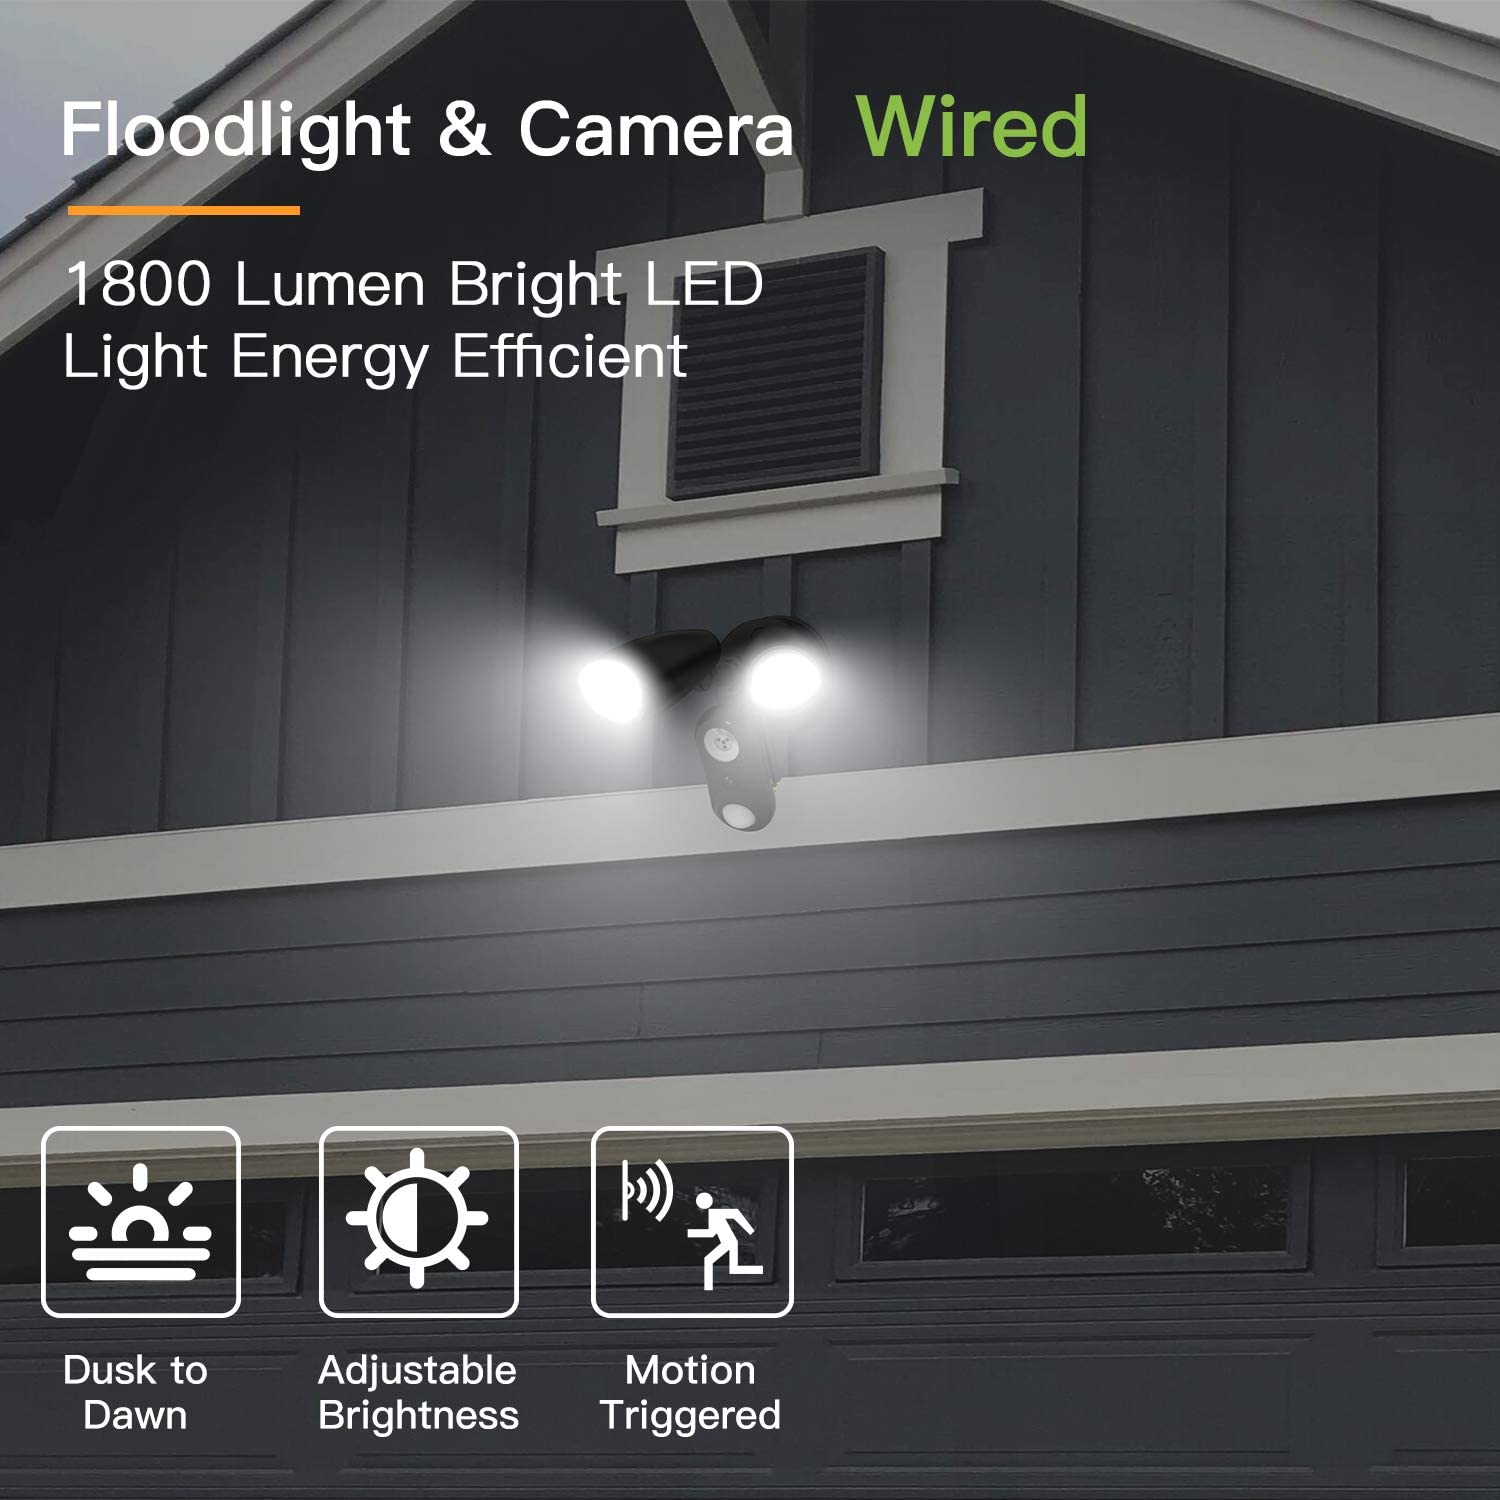 Night Vision Motion-Activated,Two-Way Talk and Siren Alarm Waterproof 1080P HD Plugged-in WiFi Home Surveillance Security Camera Compatible with Alexa Outdoor Floodlight Camera Wired